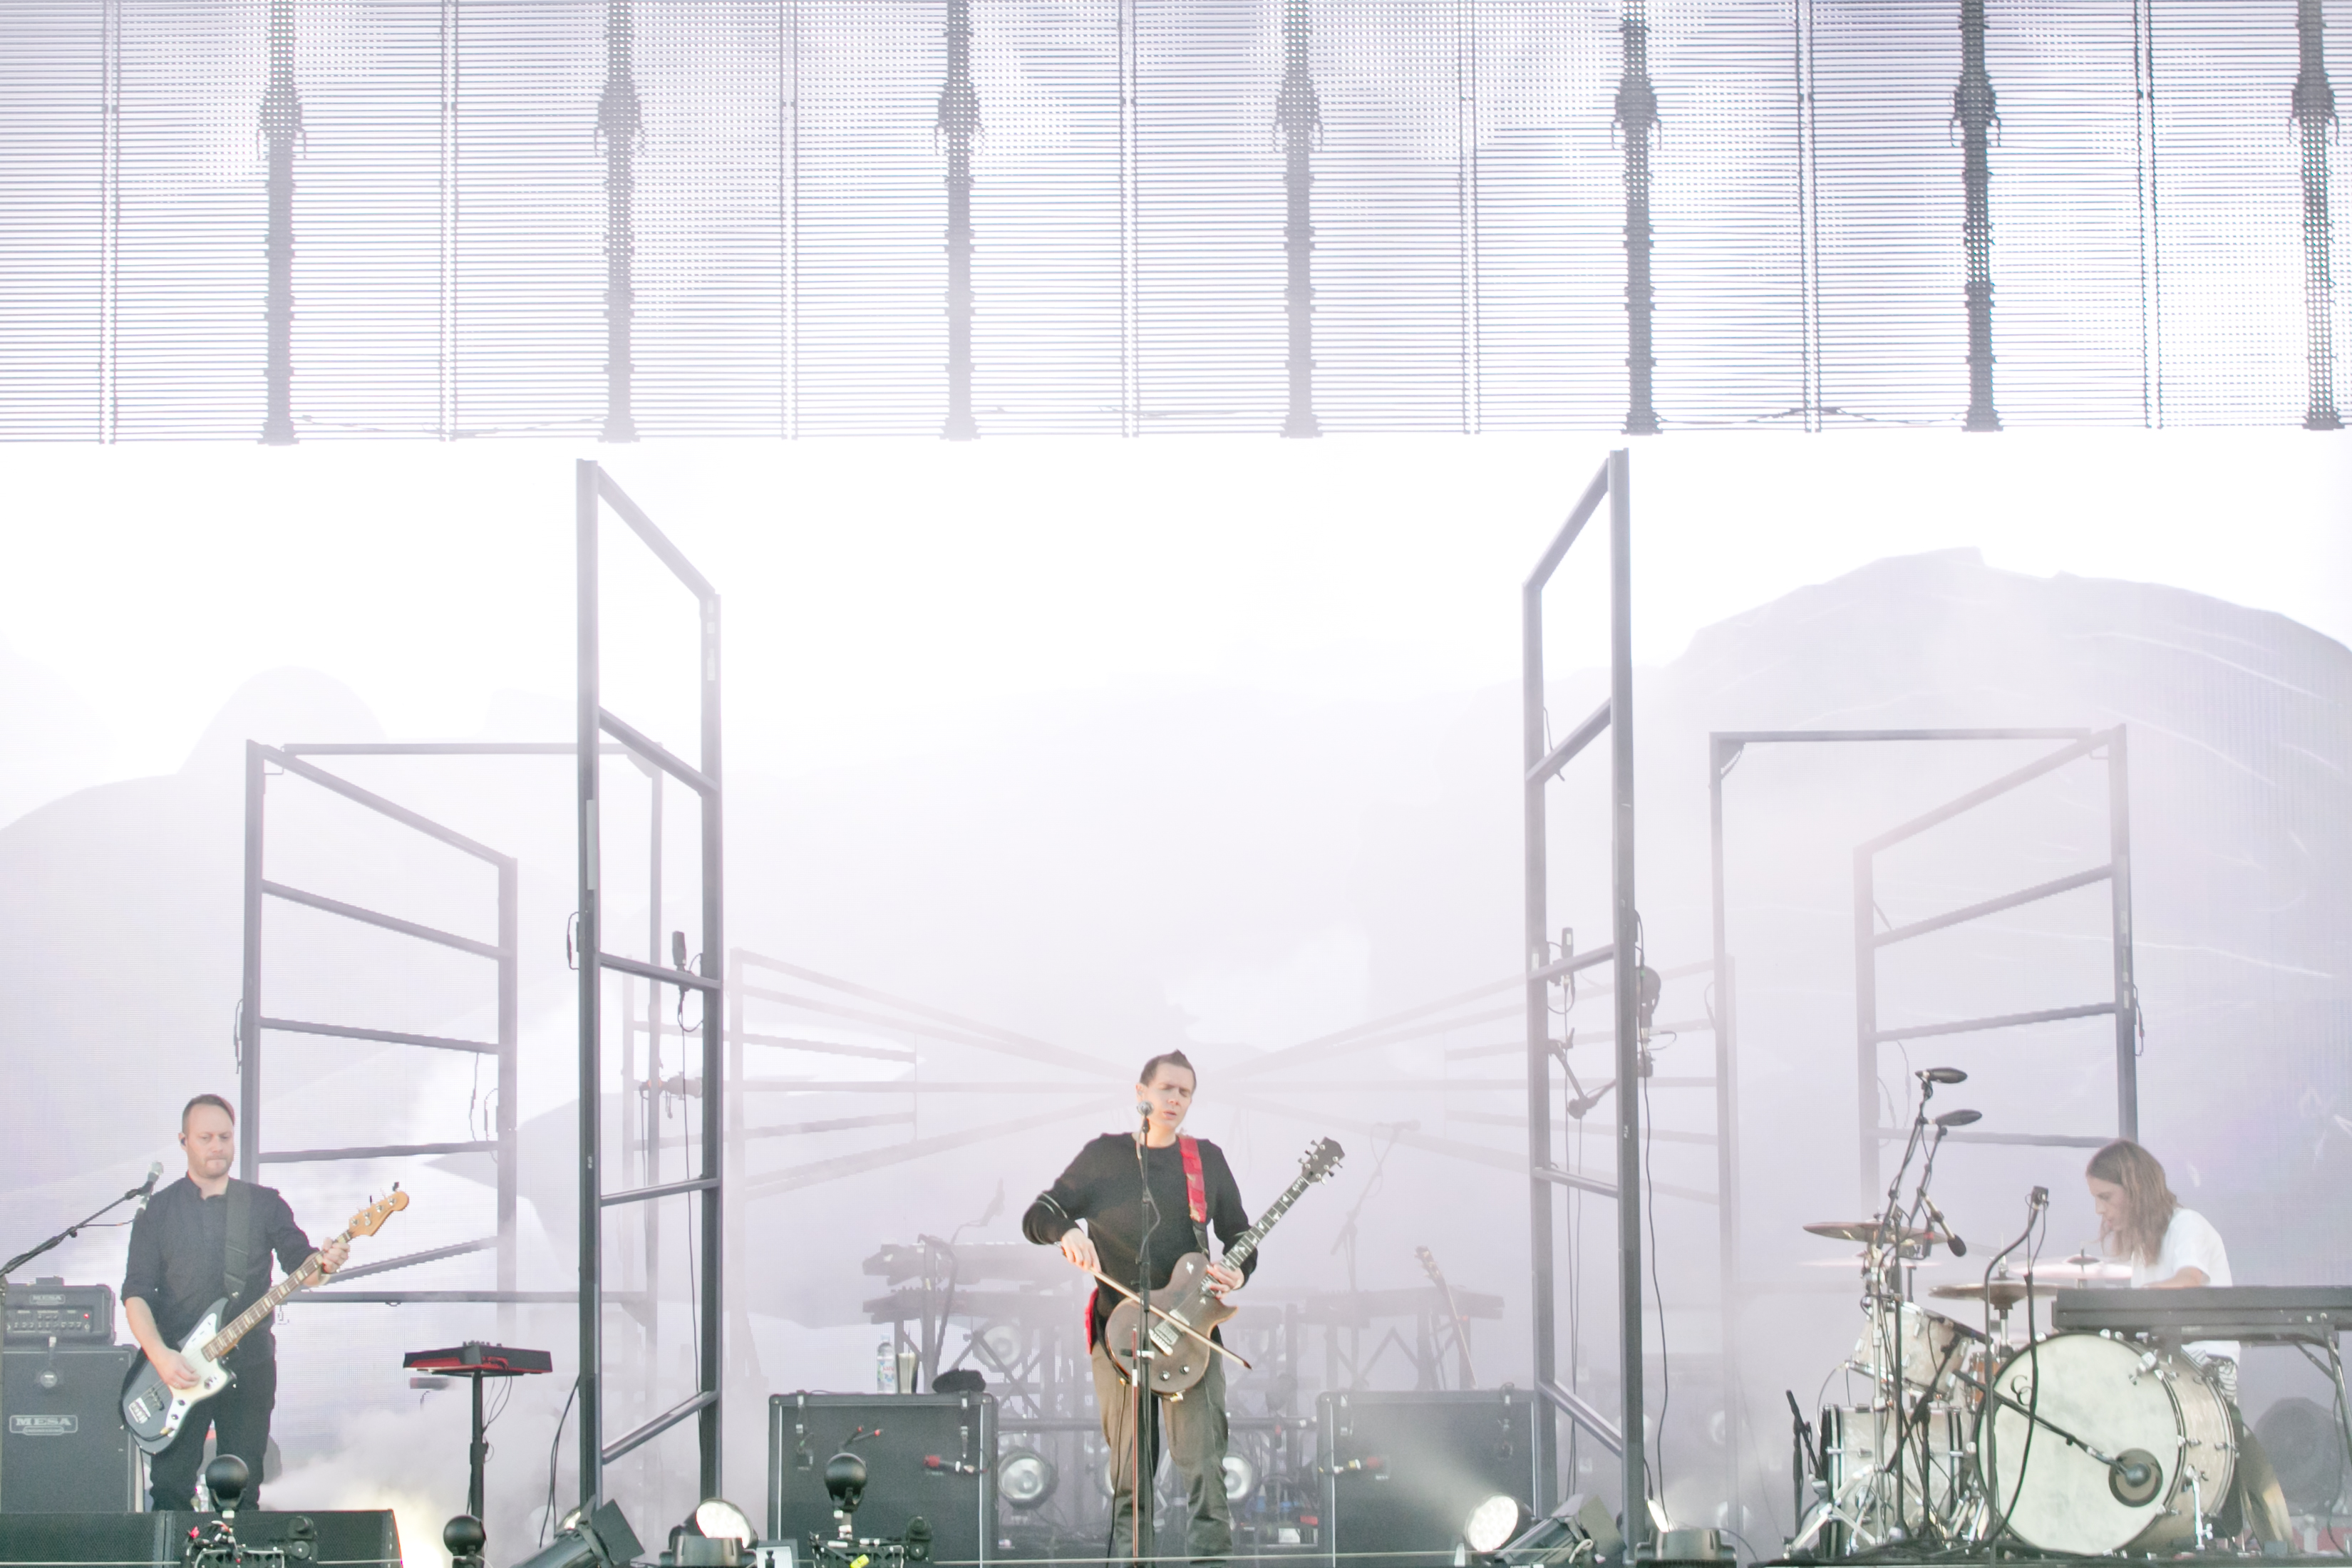 Sigur Ros at Sziget Festival, Budapest, Hungary - 13 August 2016